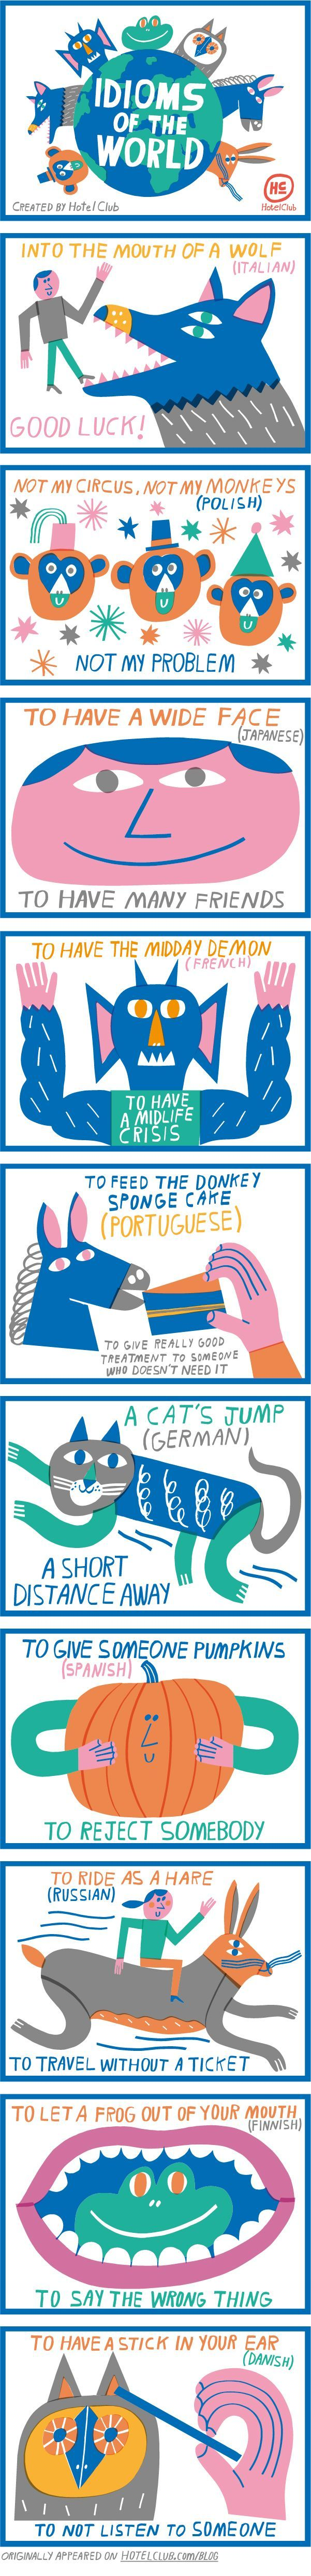 Idioms Of The World Infographic Idioms, Language